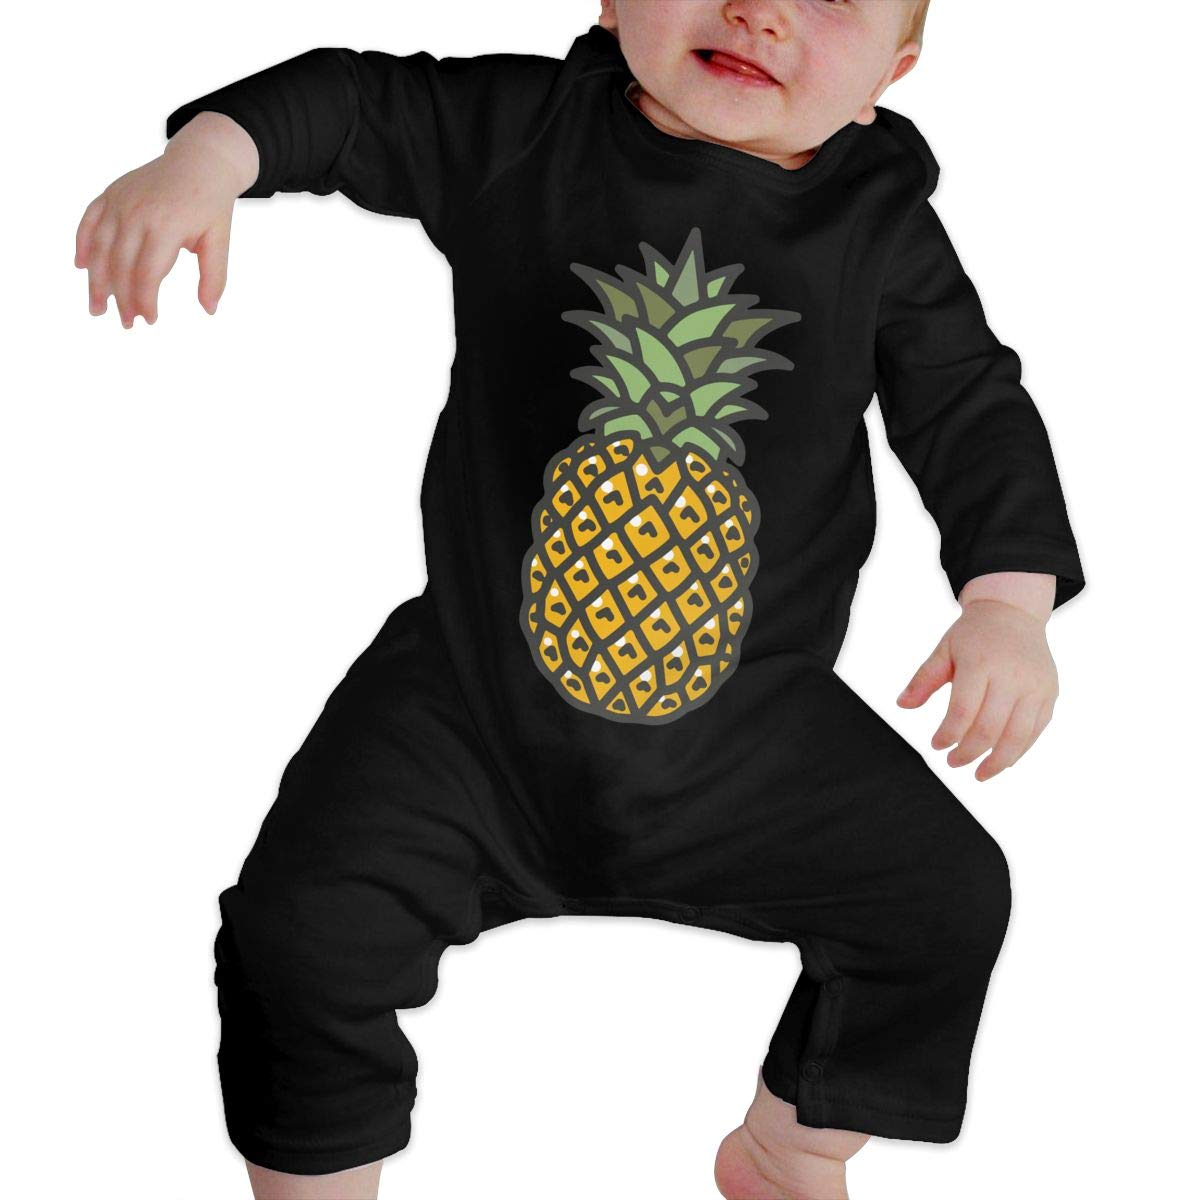 UGFGF-S3 Pineapple Fruit Newborn Baby Long Sleeve Bodysuit Jumpsuit